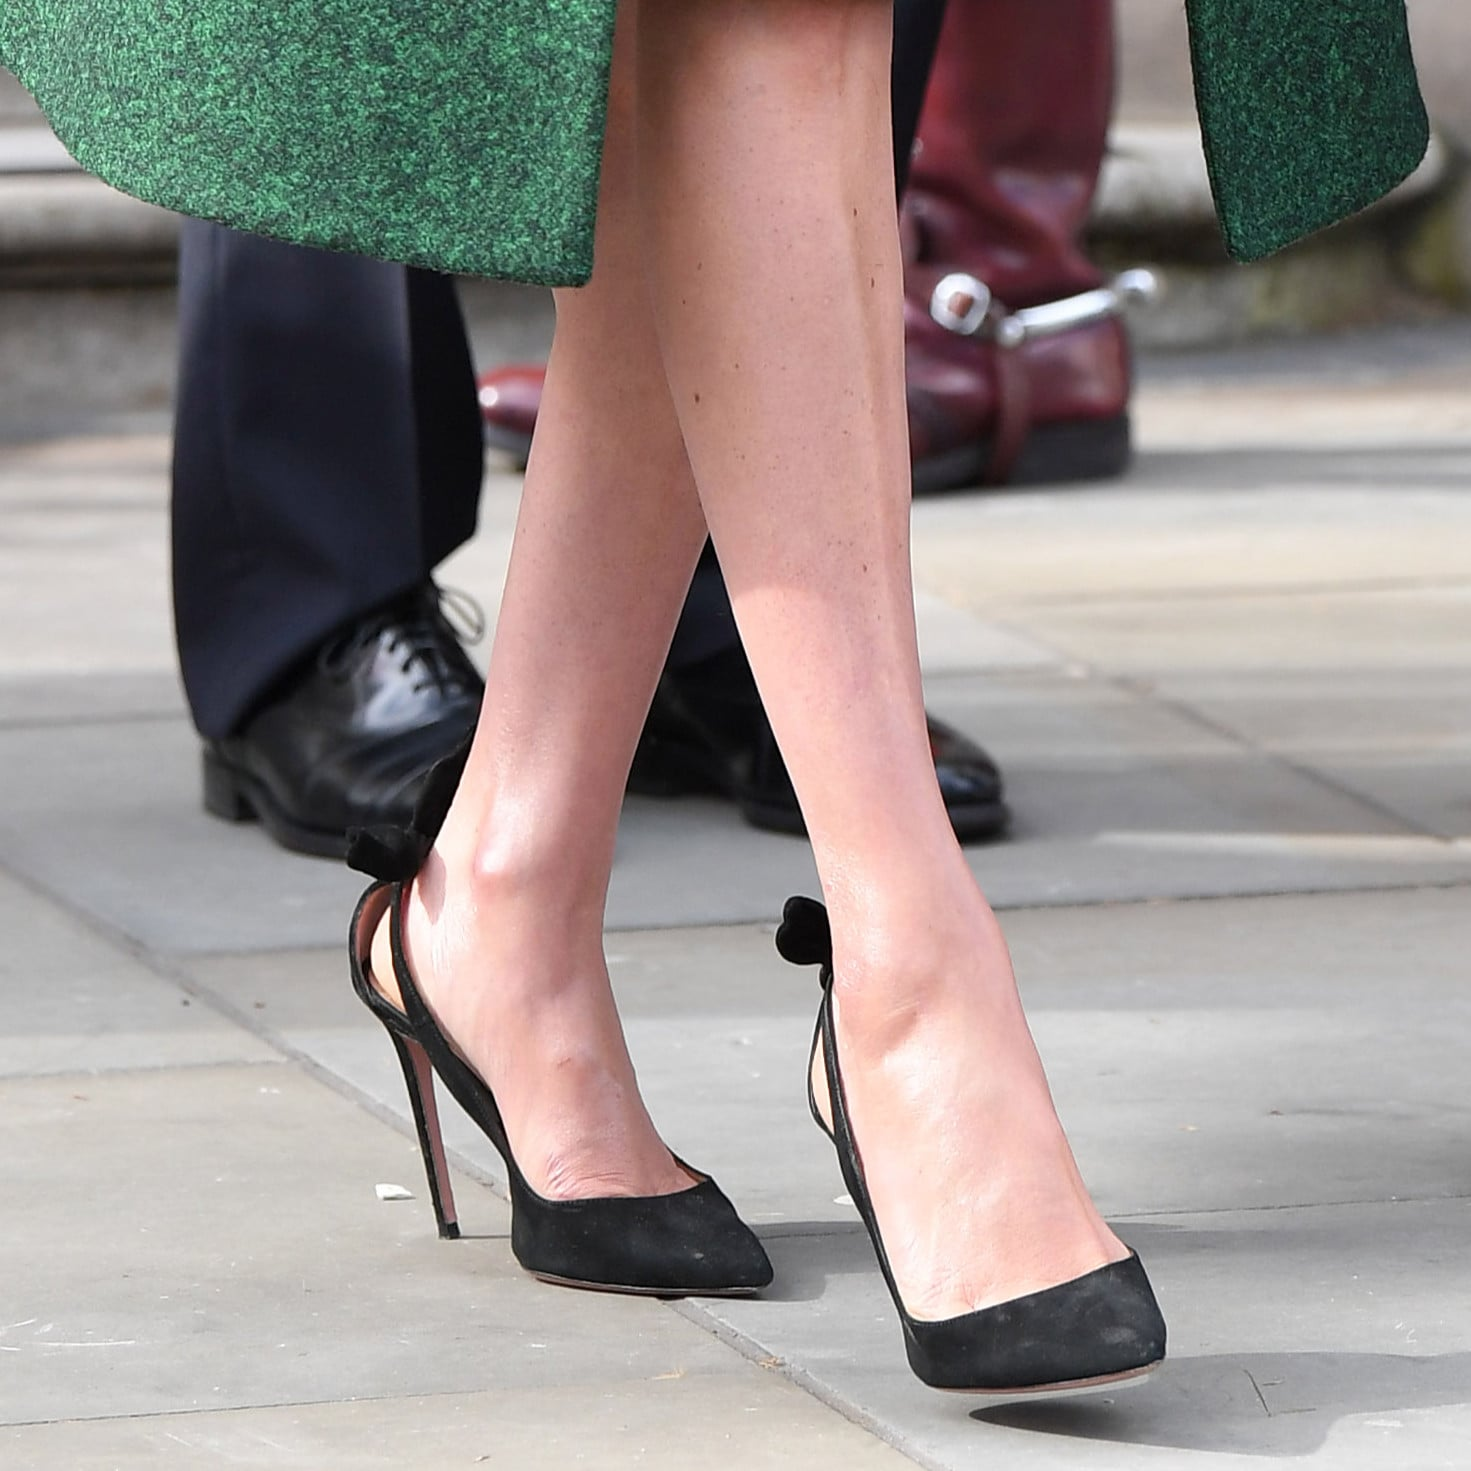 3716eccd29d48 Meghan Markle's Pregnancy Shoes | POPSUGAR Fashion